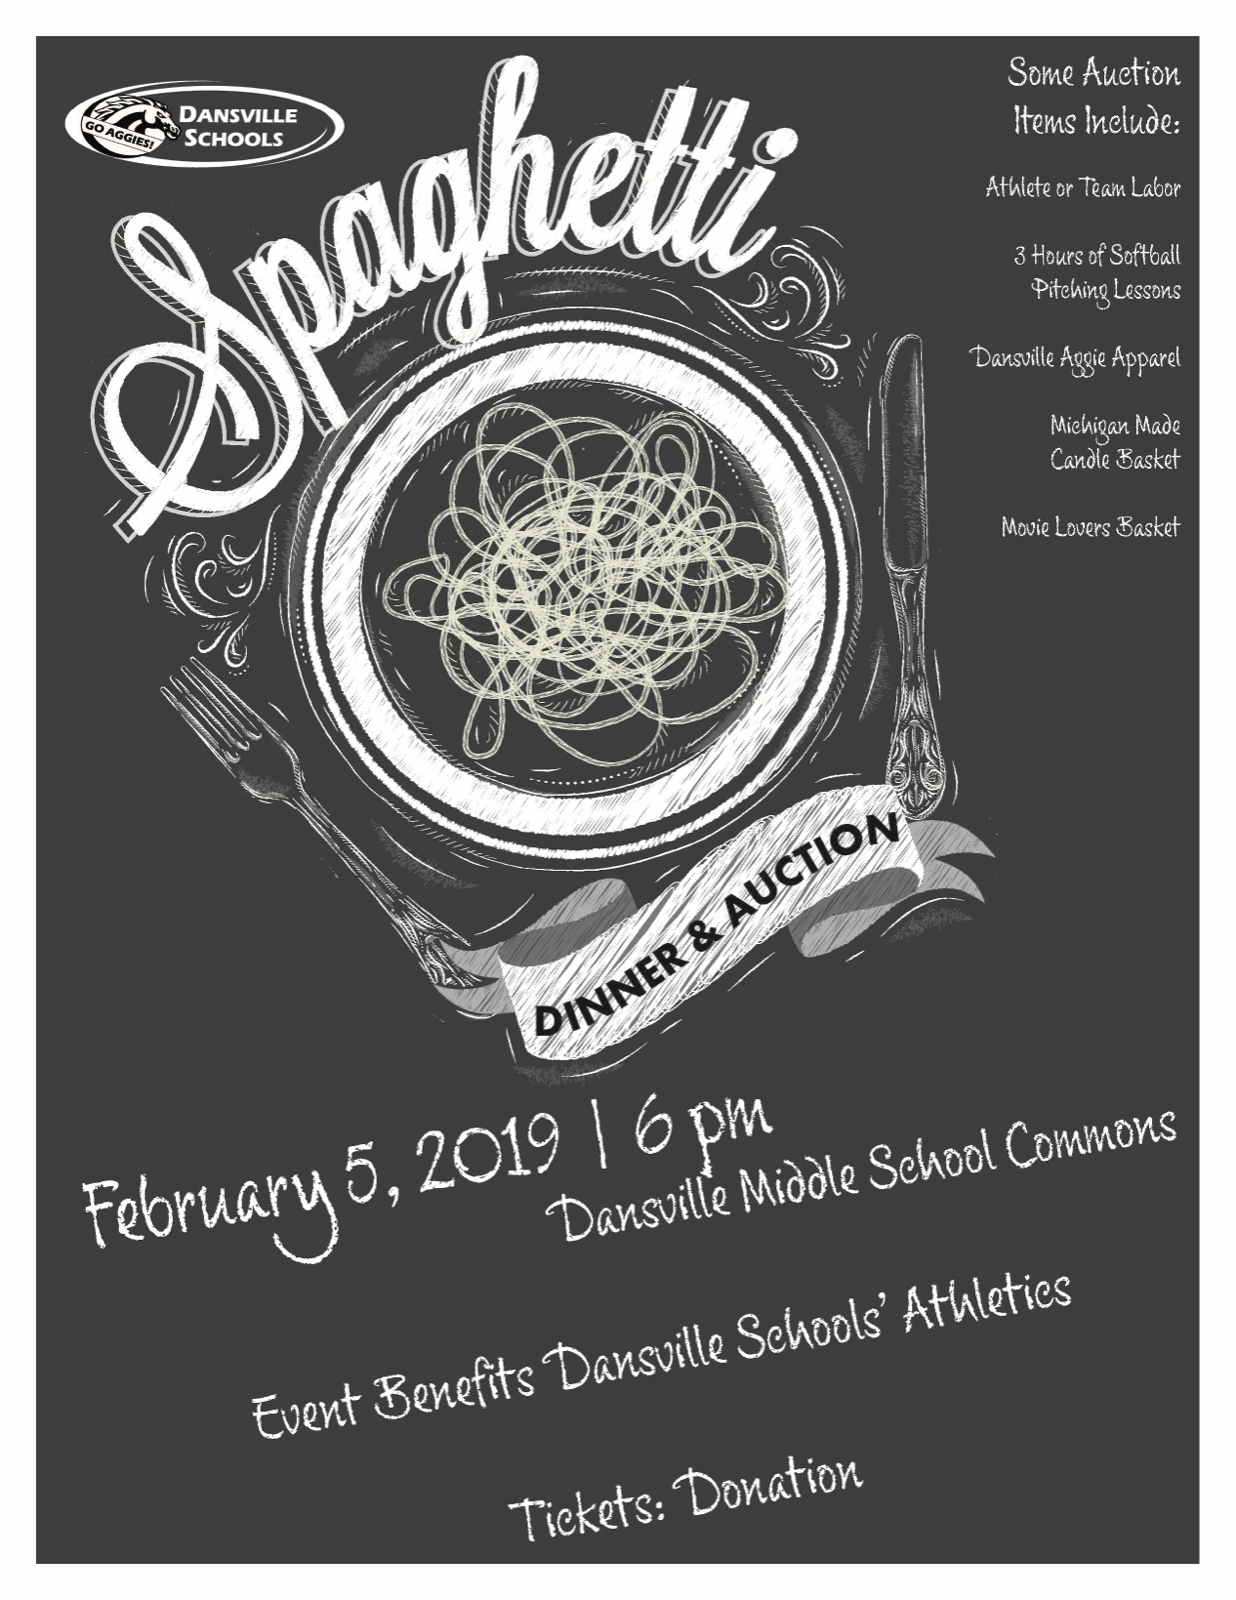 Spaghetti Dinner and Auction, Feb. 5